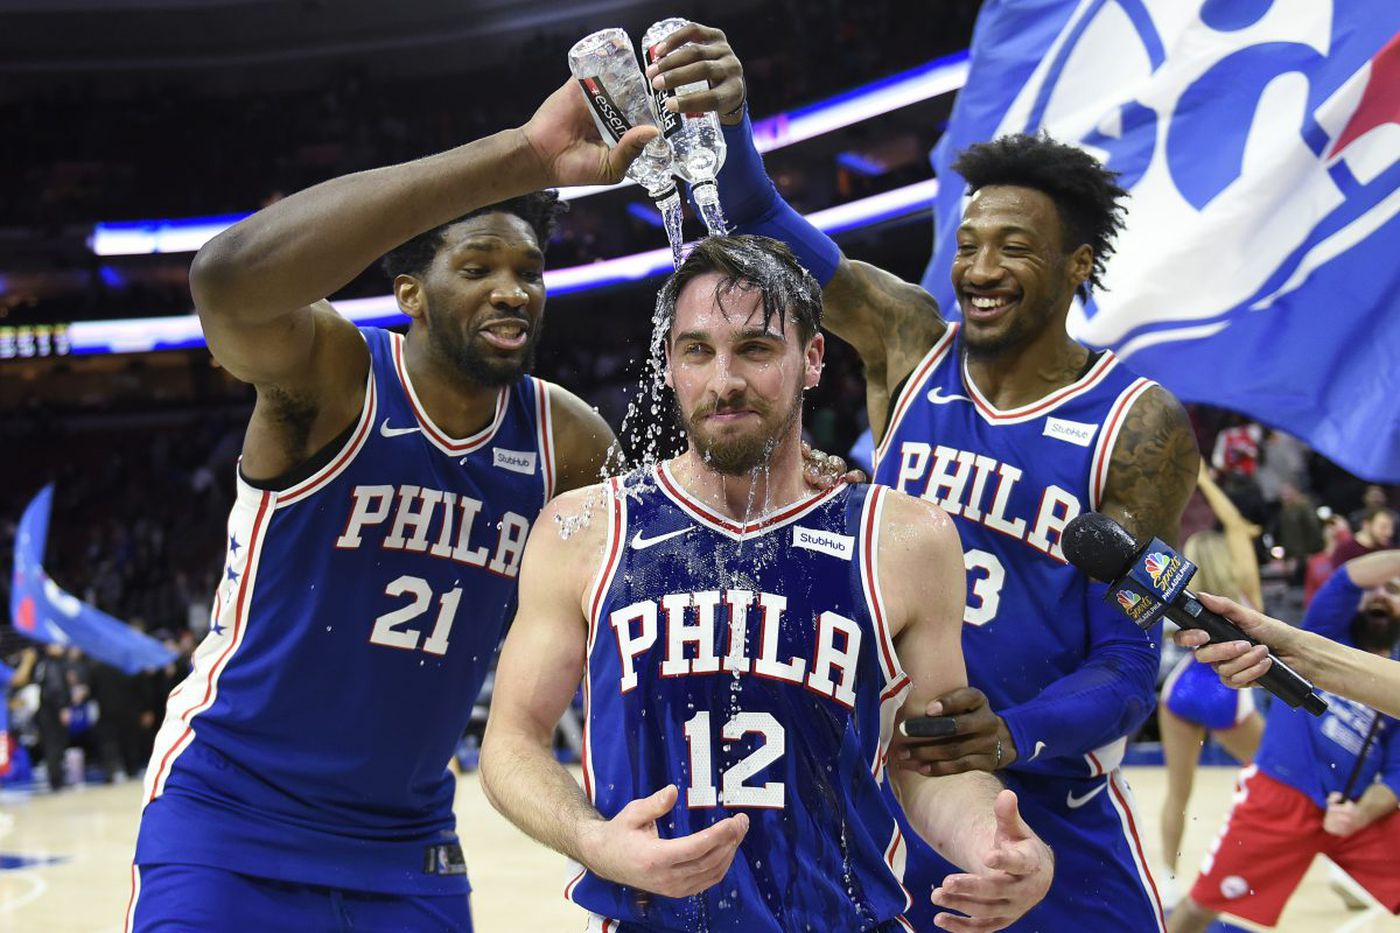 Sixers-Knicks observations, 'best' and 'worst' awards: T.J. McConnell's grit, Ben Simmons' defense, and more